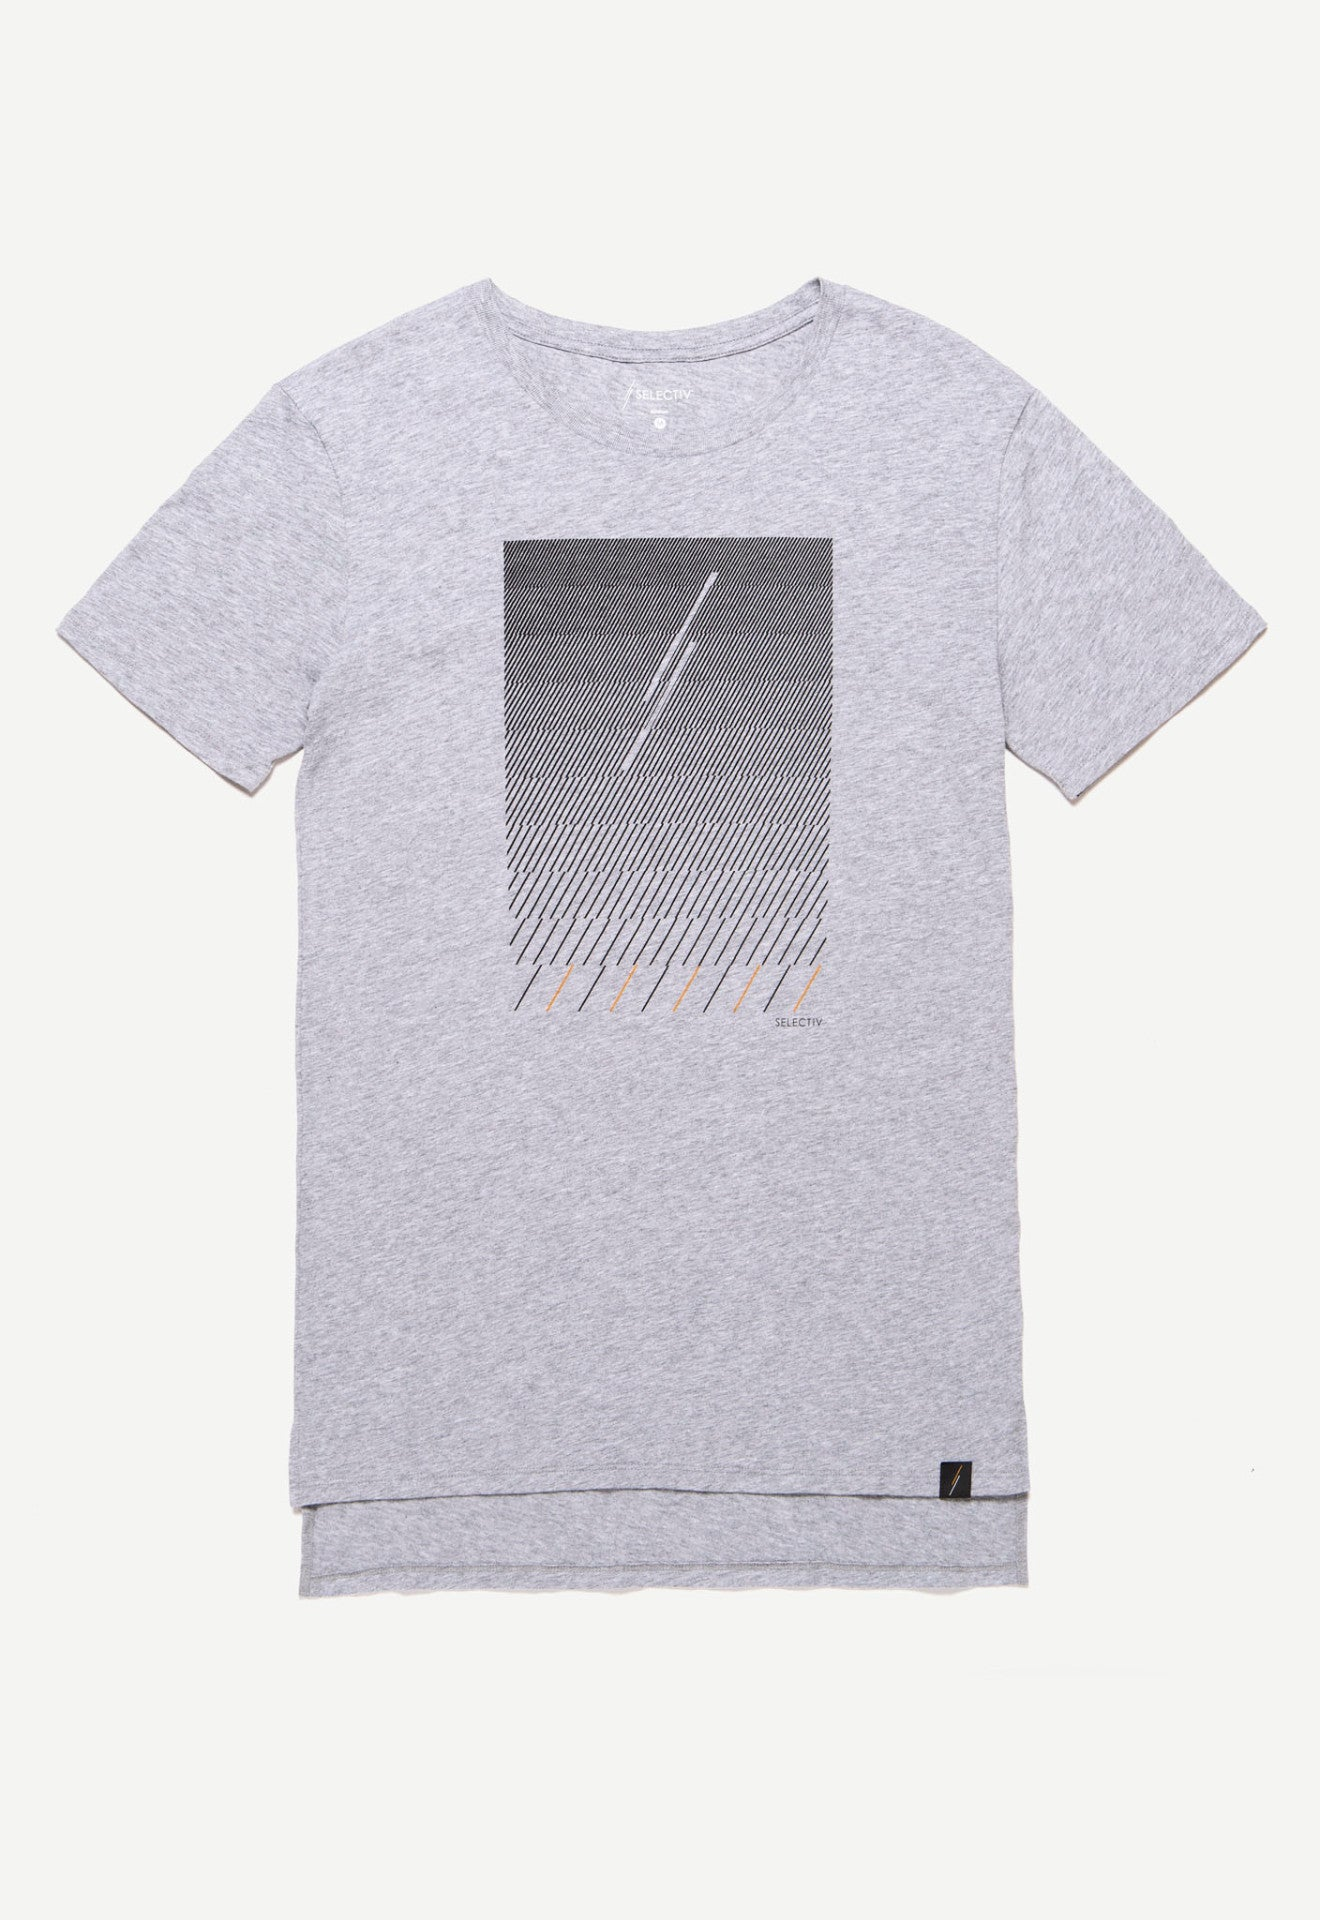 Graphic Elongated Tee - Dashed Rain (Concrete Grey)